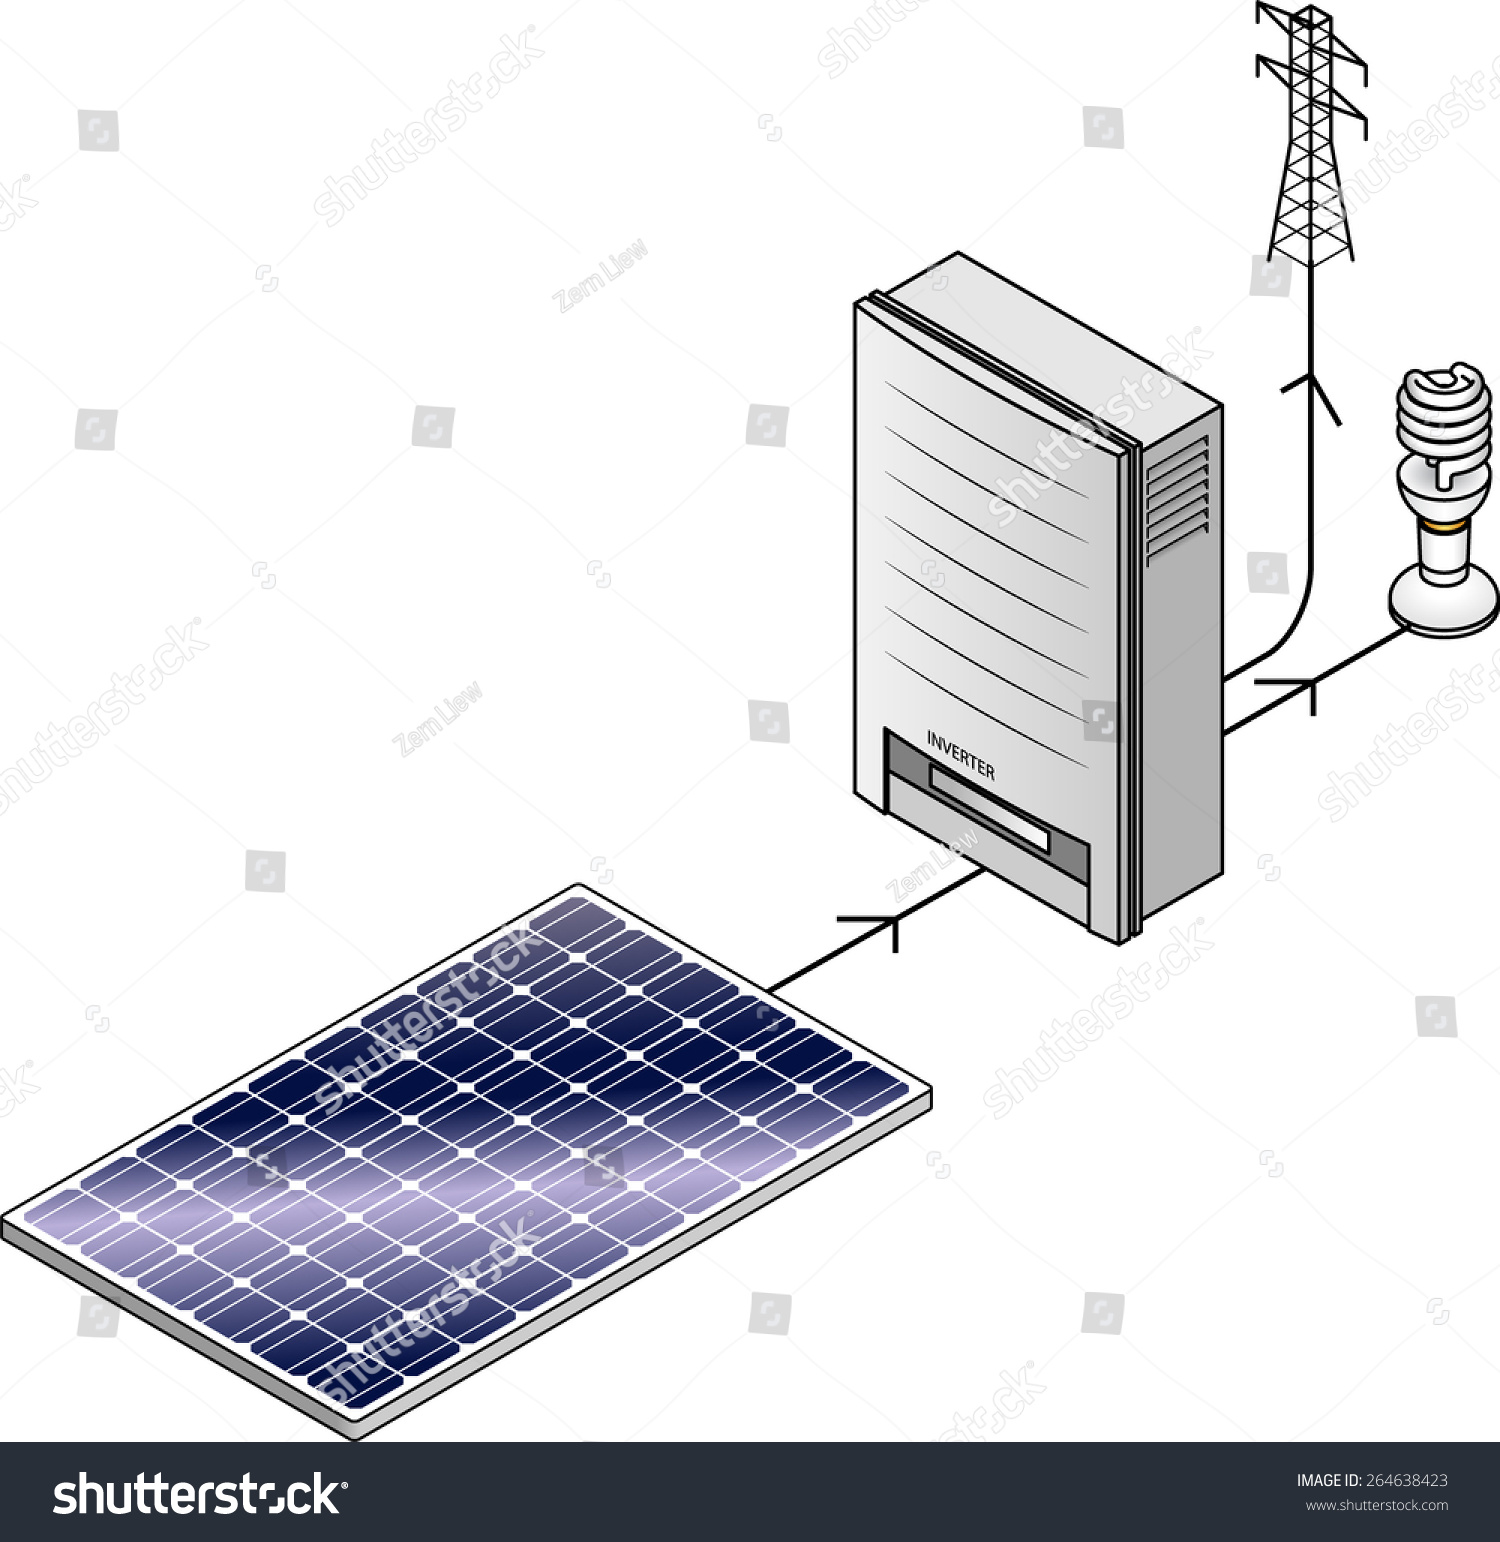 Setup Diagram Domestic Household Solar Power Stock Vector Royalty Of A Panel Kit With Polycrystalline Panels And Inverter